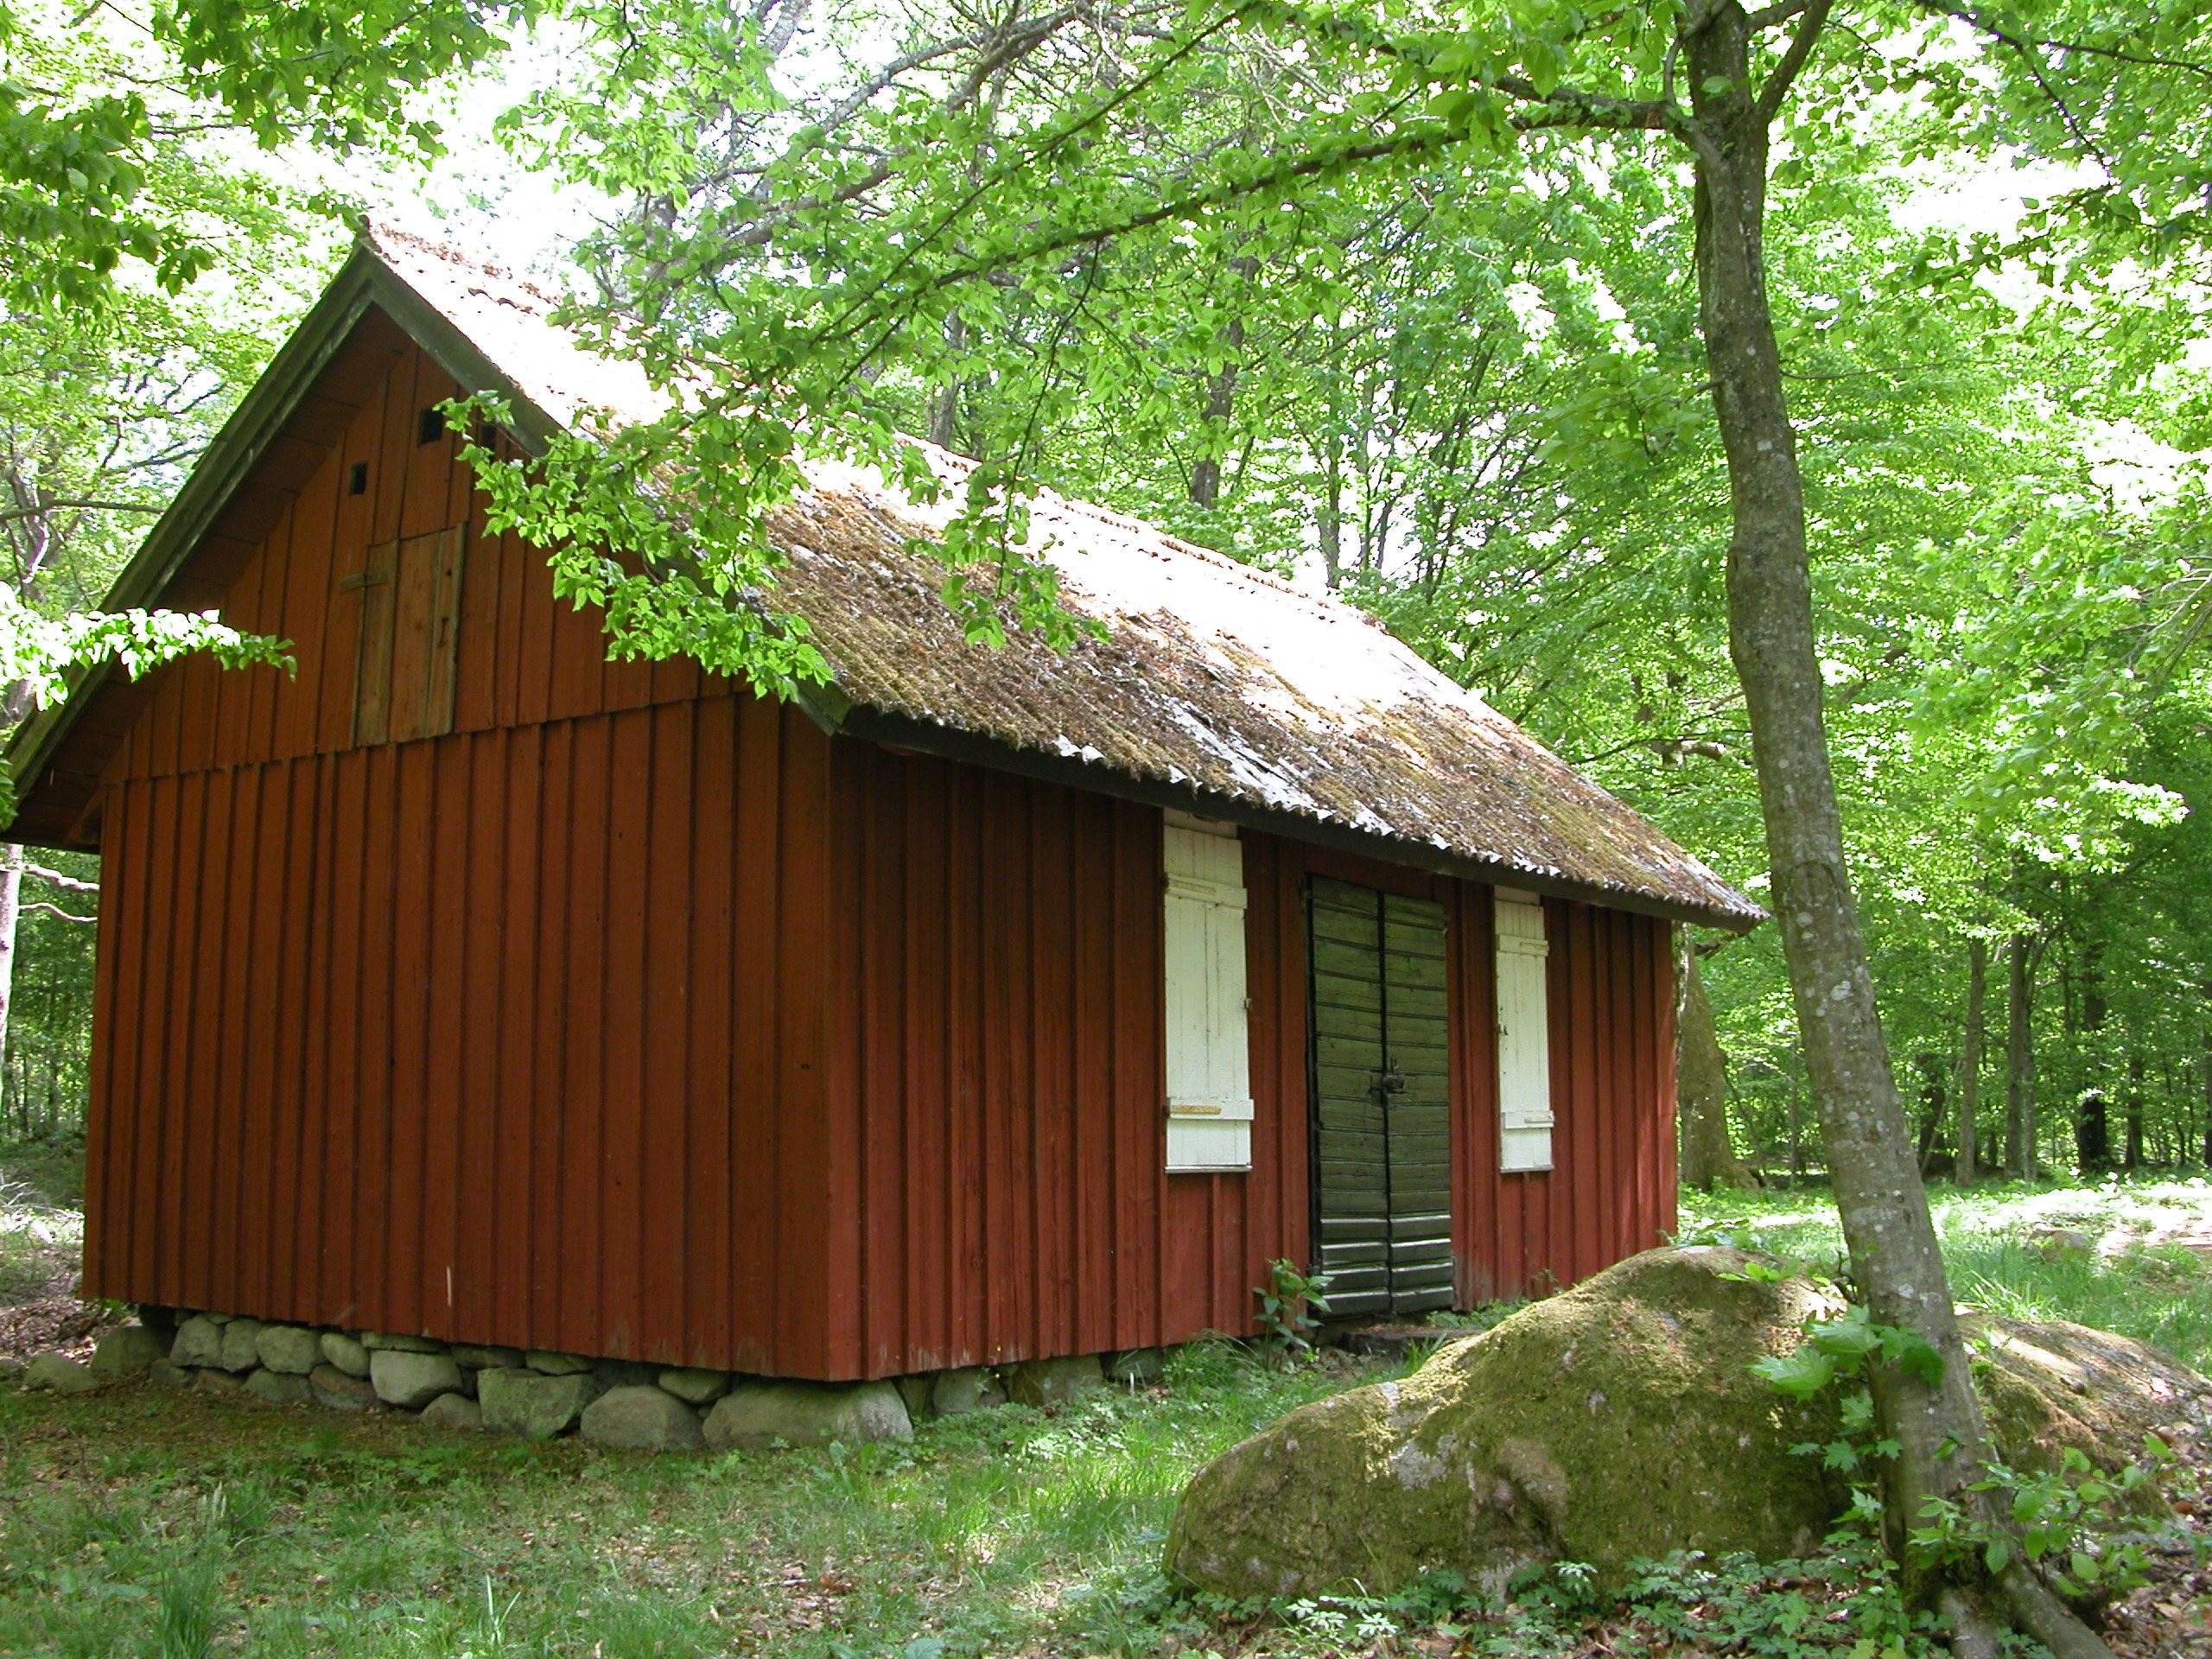 Älmhult Local heritage center and Ormakullagården